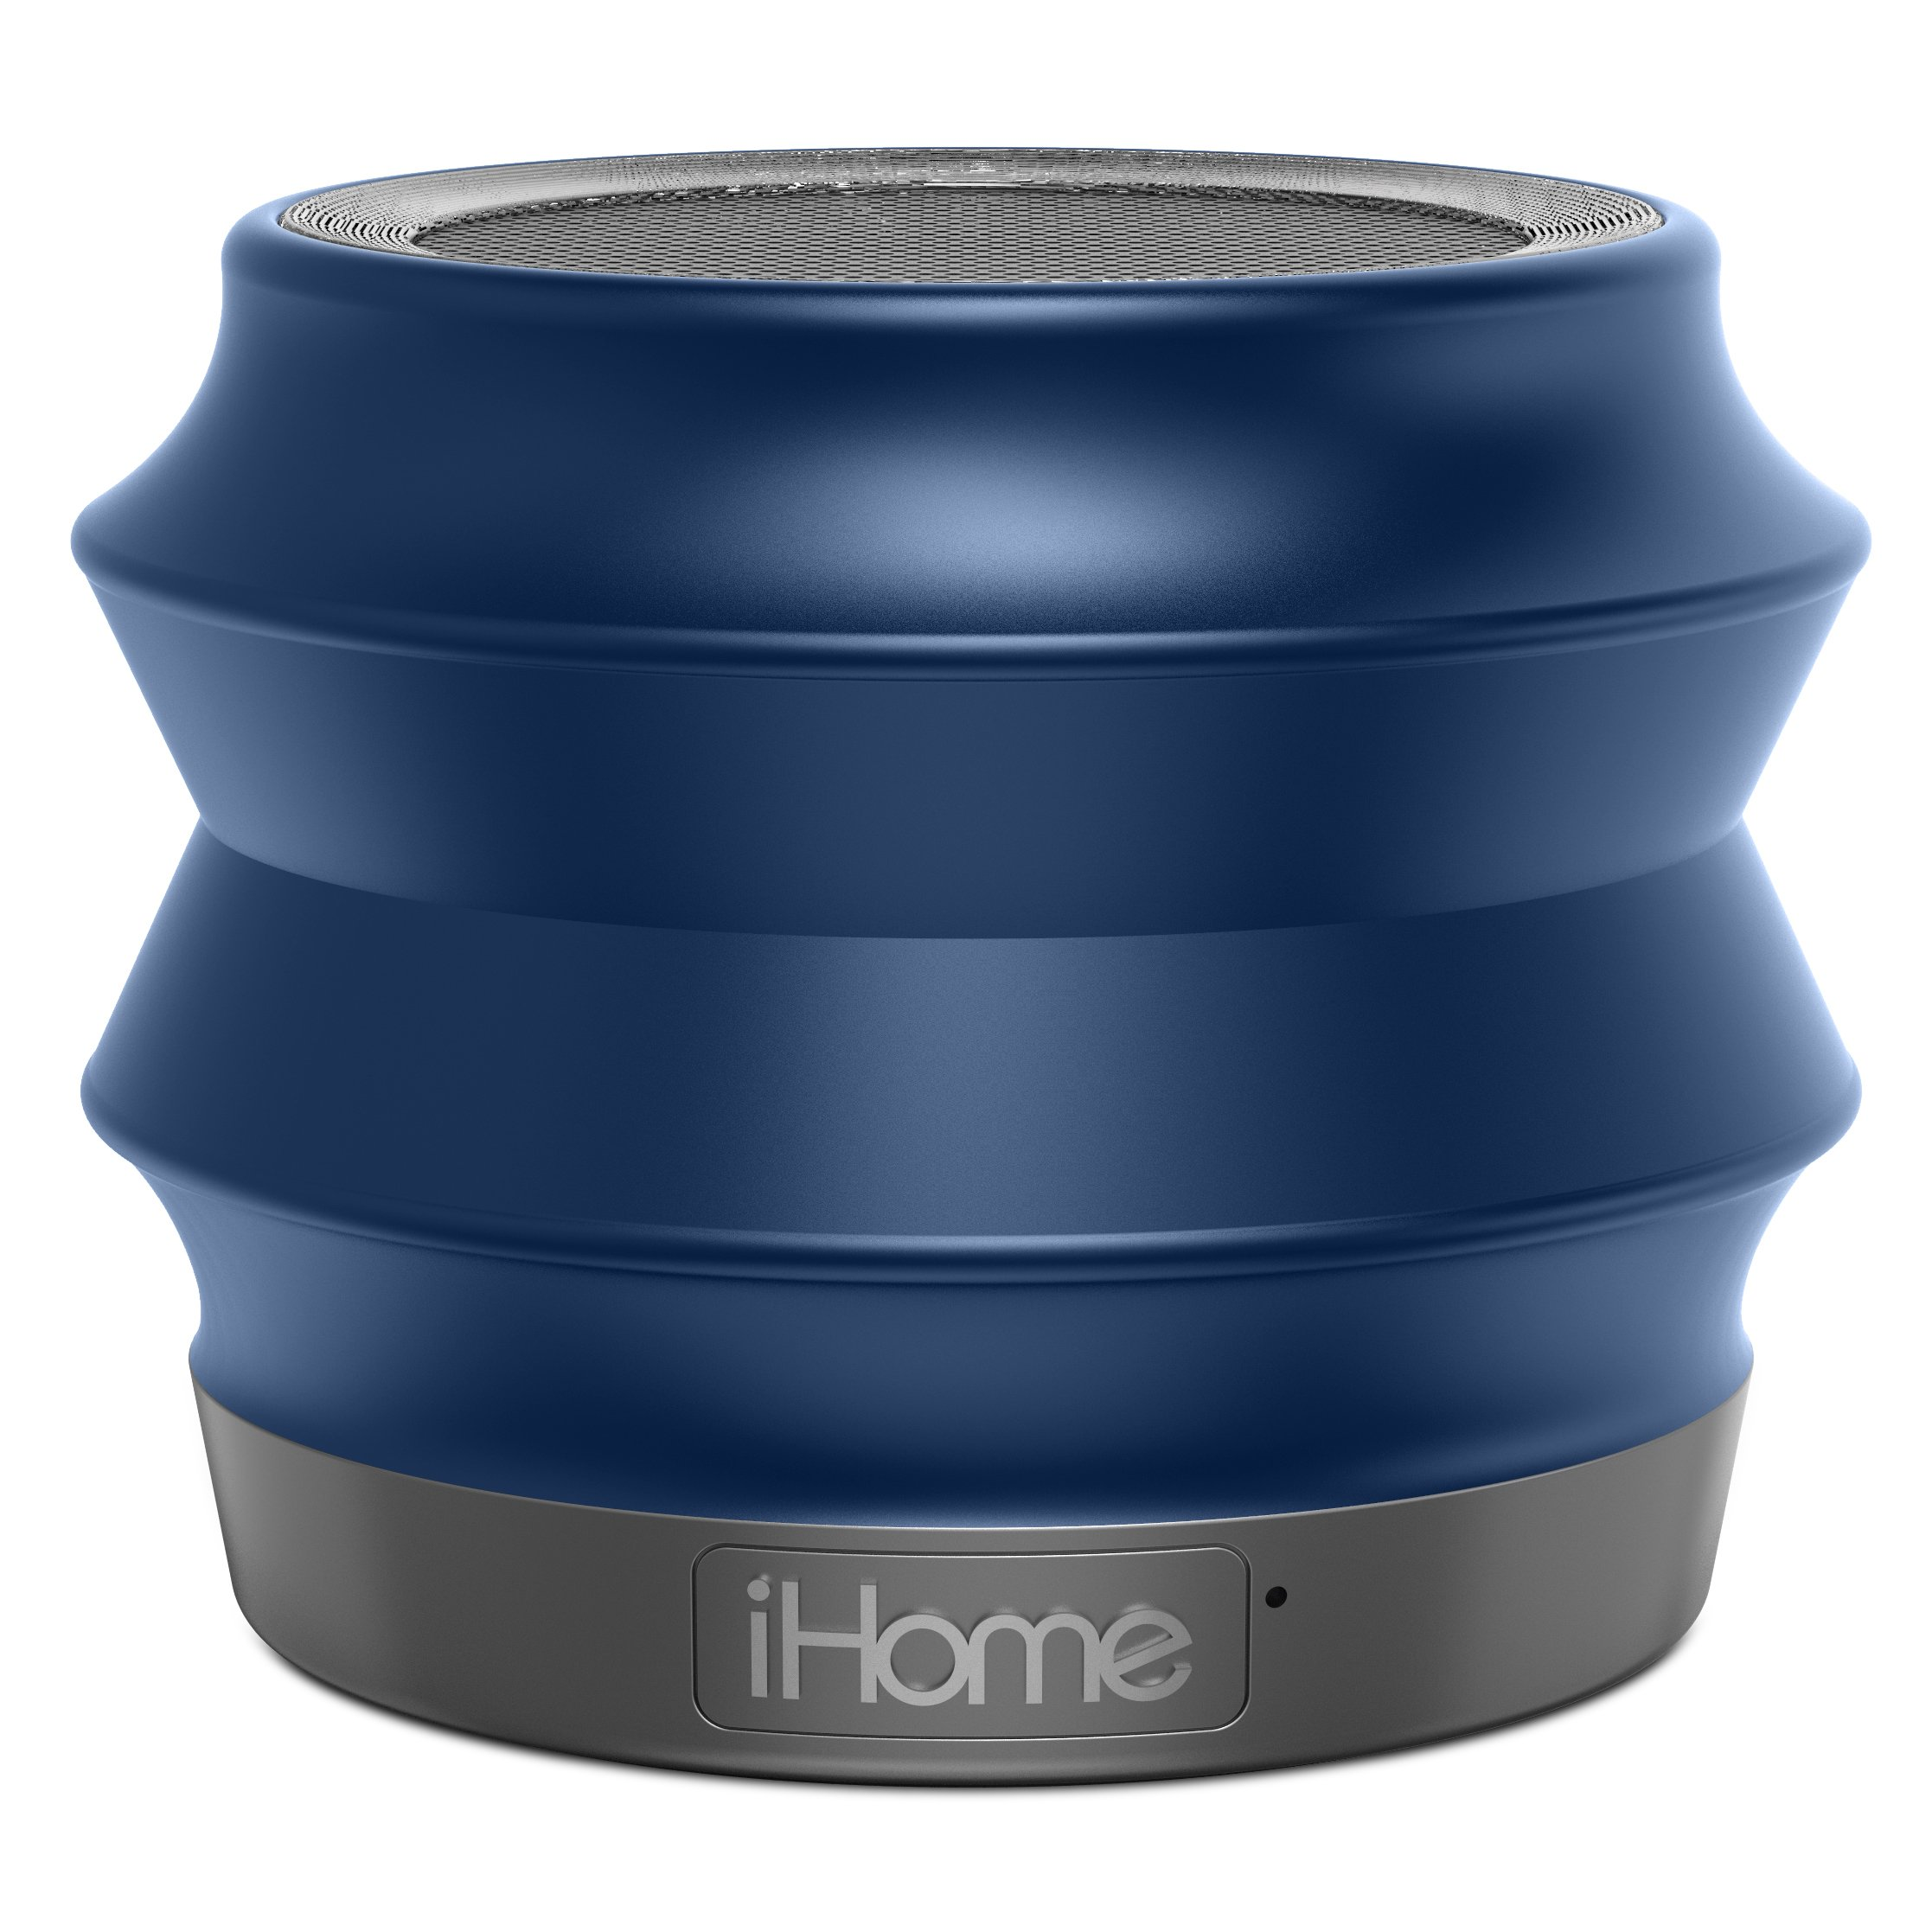 Ihome Ibt61bc Portable Collapsible Bluetooth Speaker With..